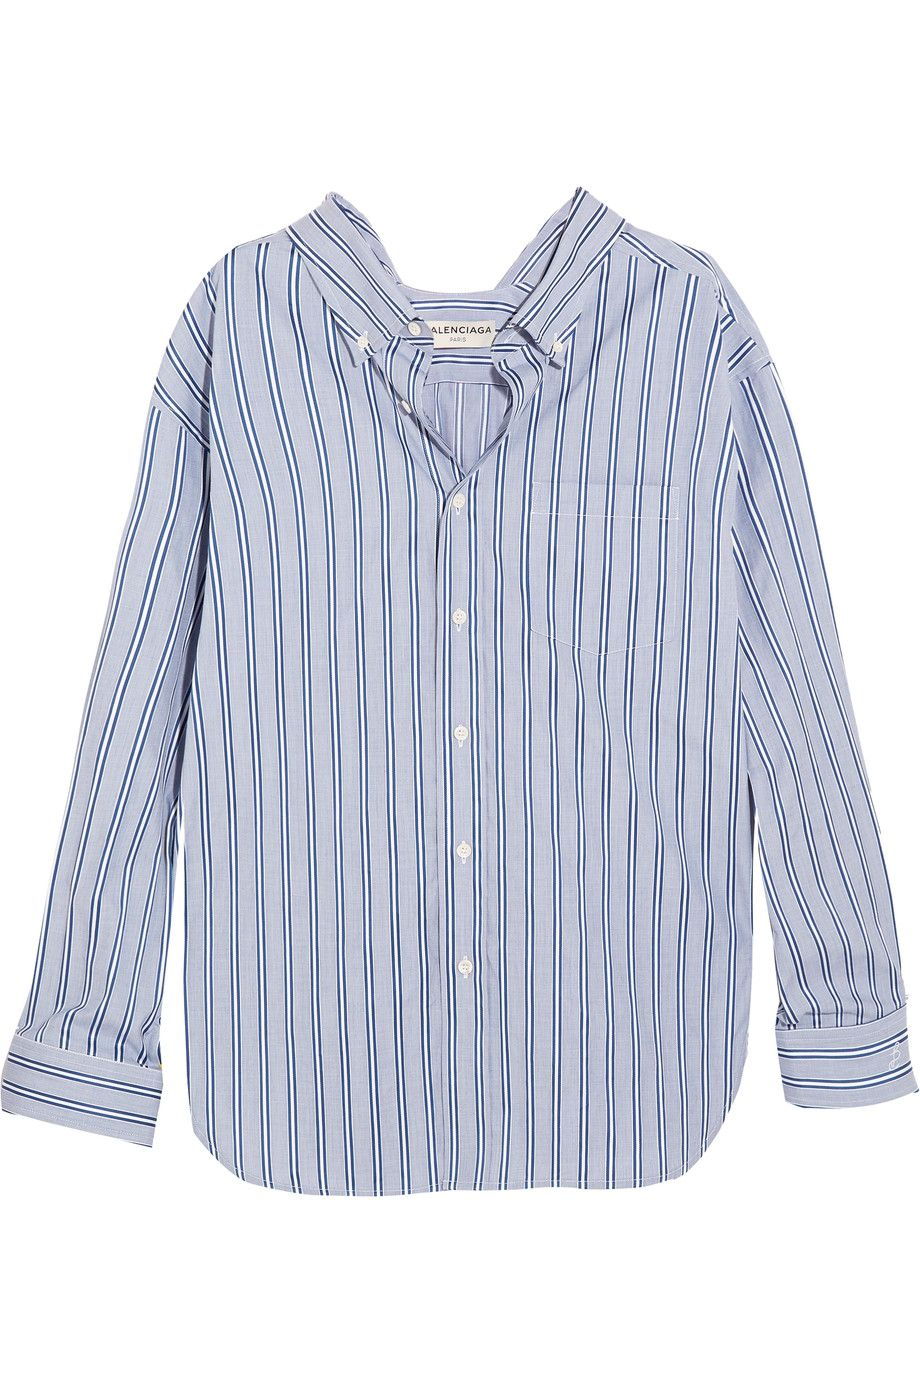 Balenciaga | Striped cotton-poplin shirt | NET-A-PORTER.COM